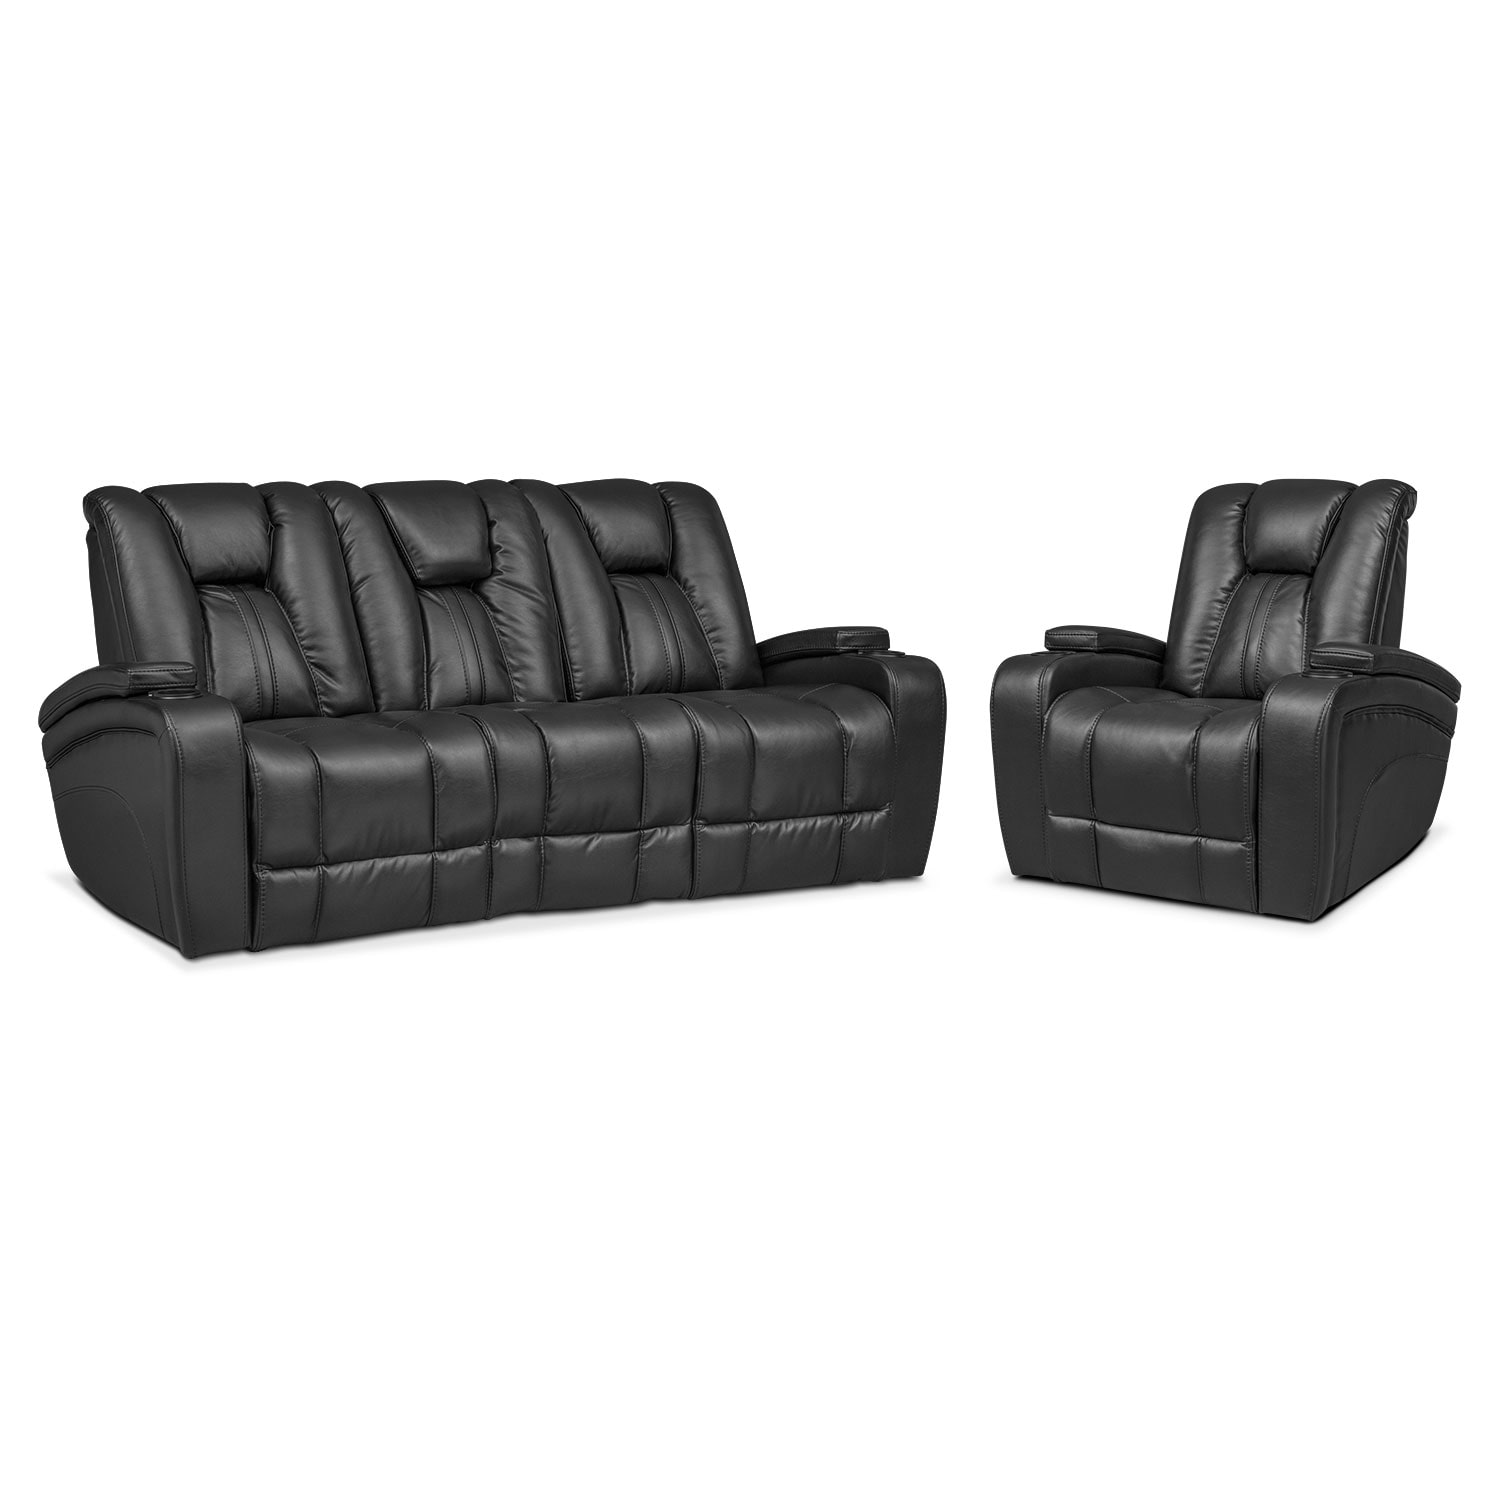 Superbe Living Room Furniture   Pulsar Dual Power Reclining Sofa And Power Recliner  Set   Black